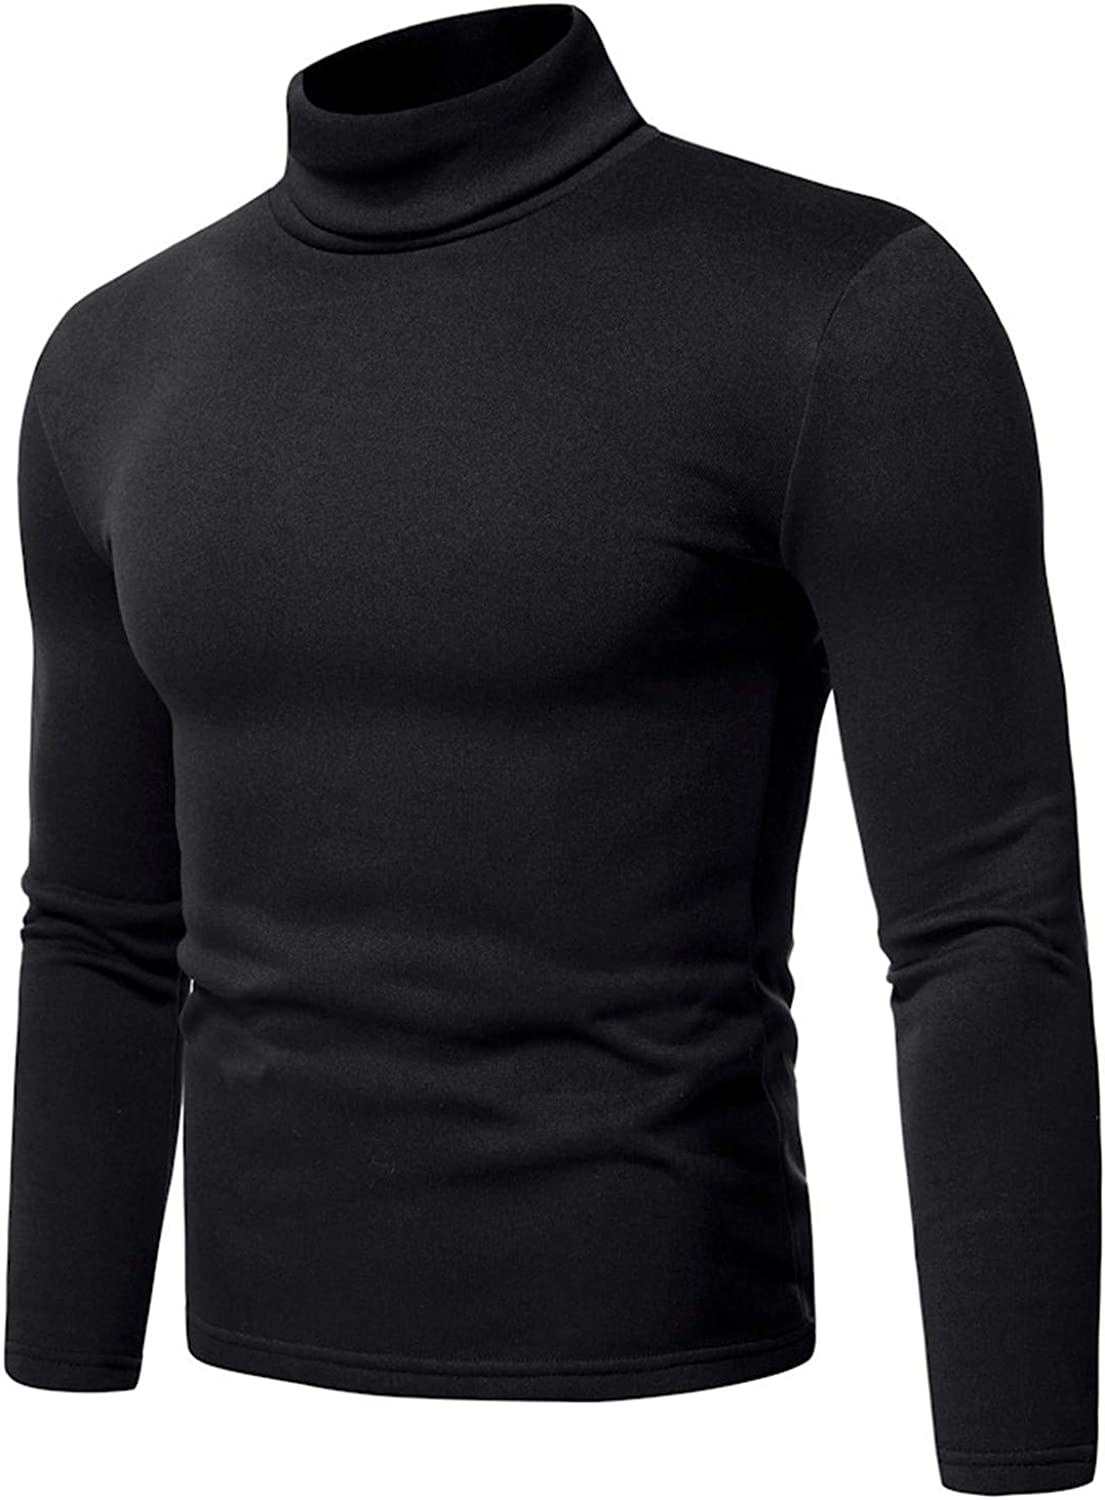 Men's Turtleneck Pullover Tops Long Sleeve Thermal Sweater Stretch Slim Casual Bottoming Blouse